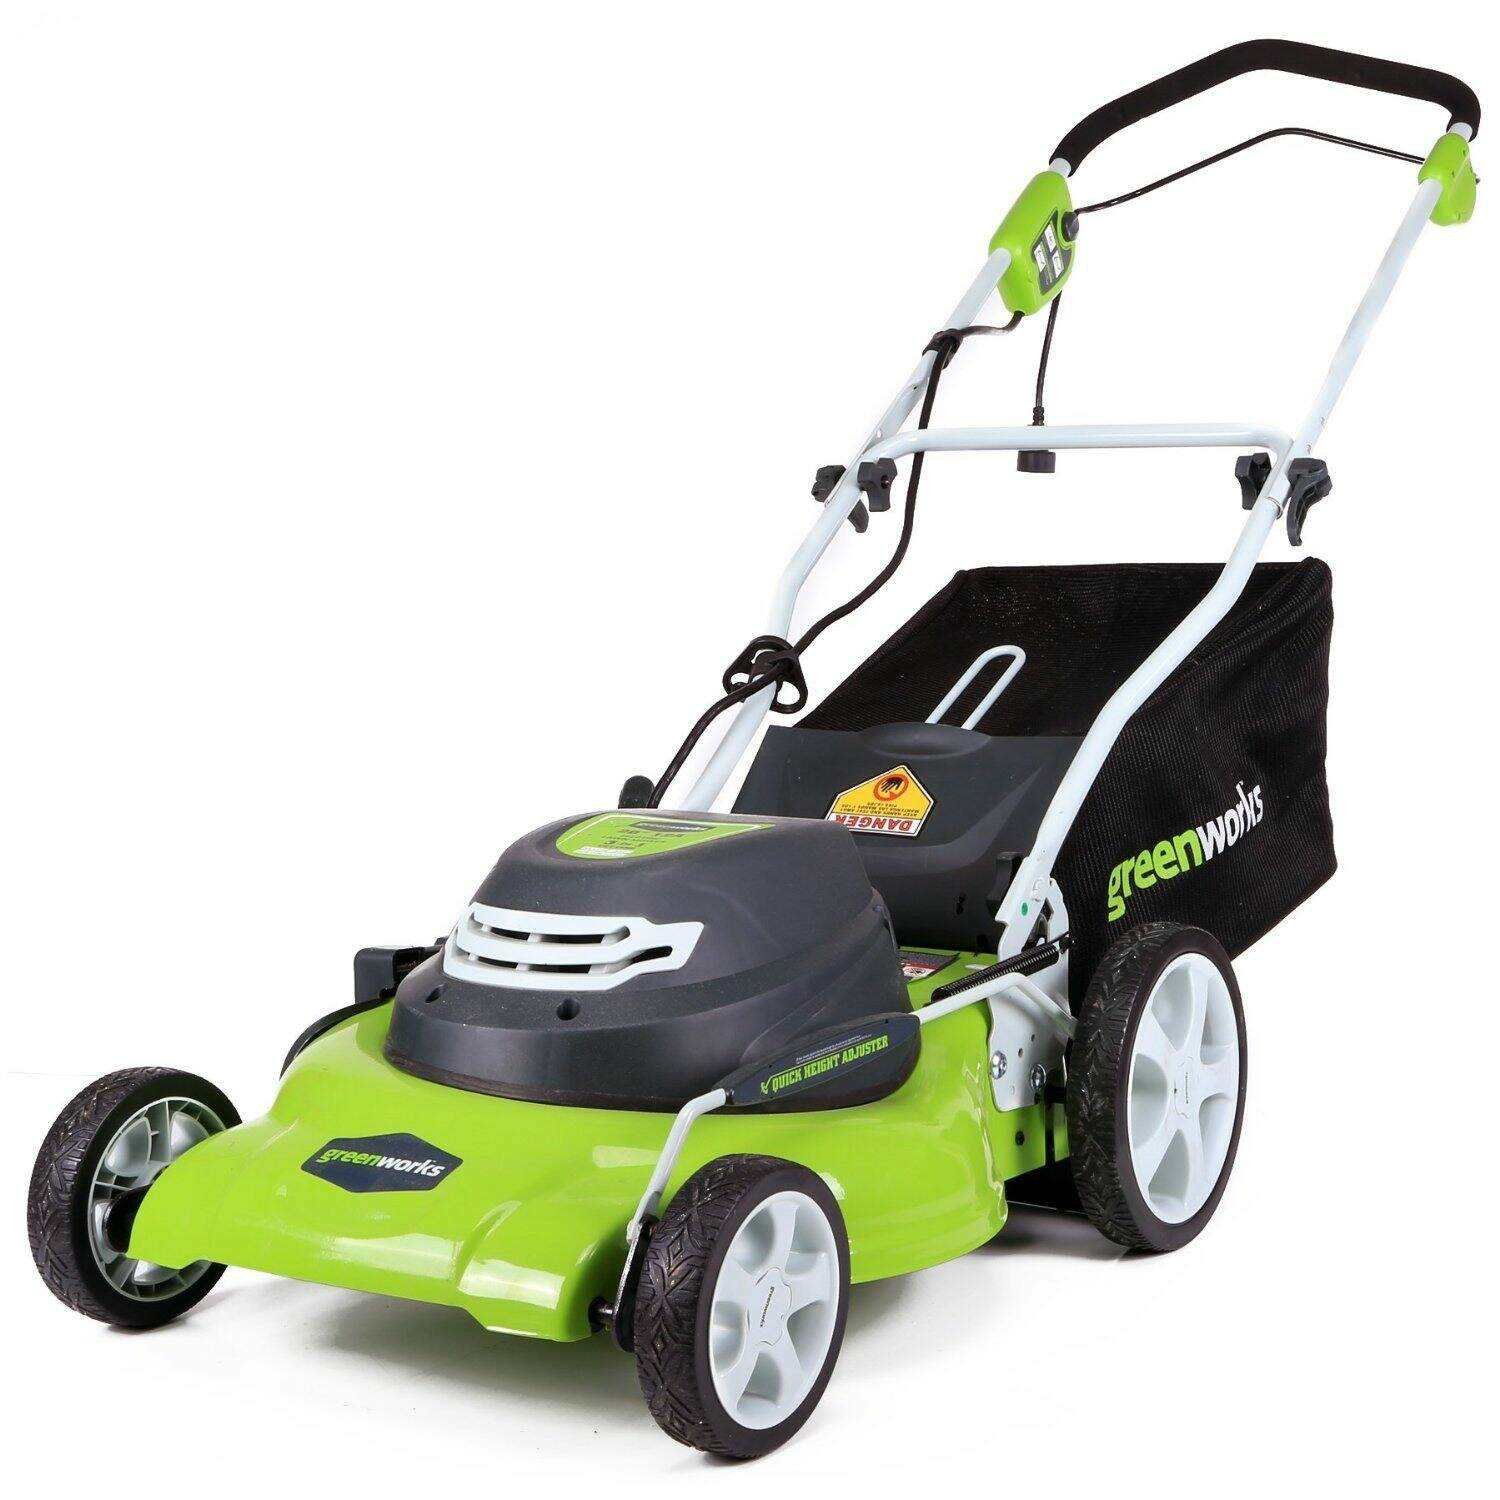 Electric Lawn Mowers with Cord